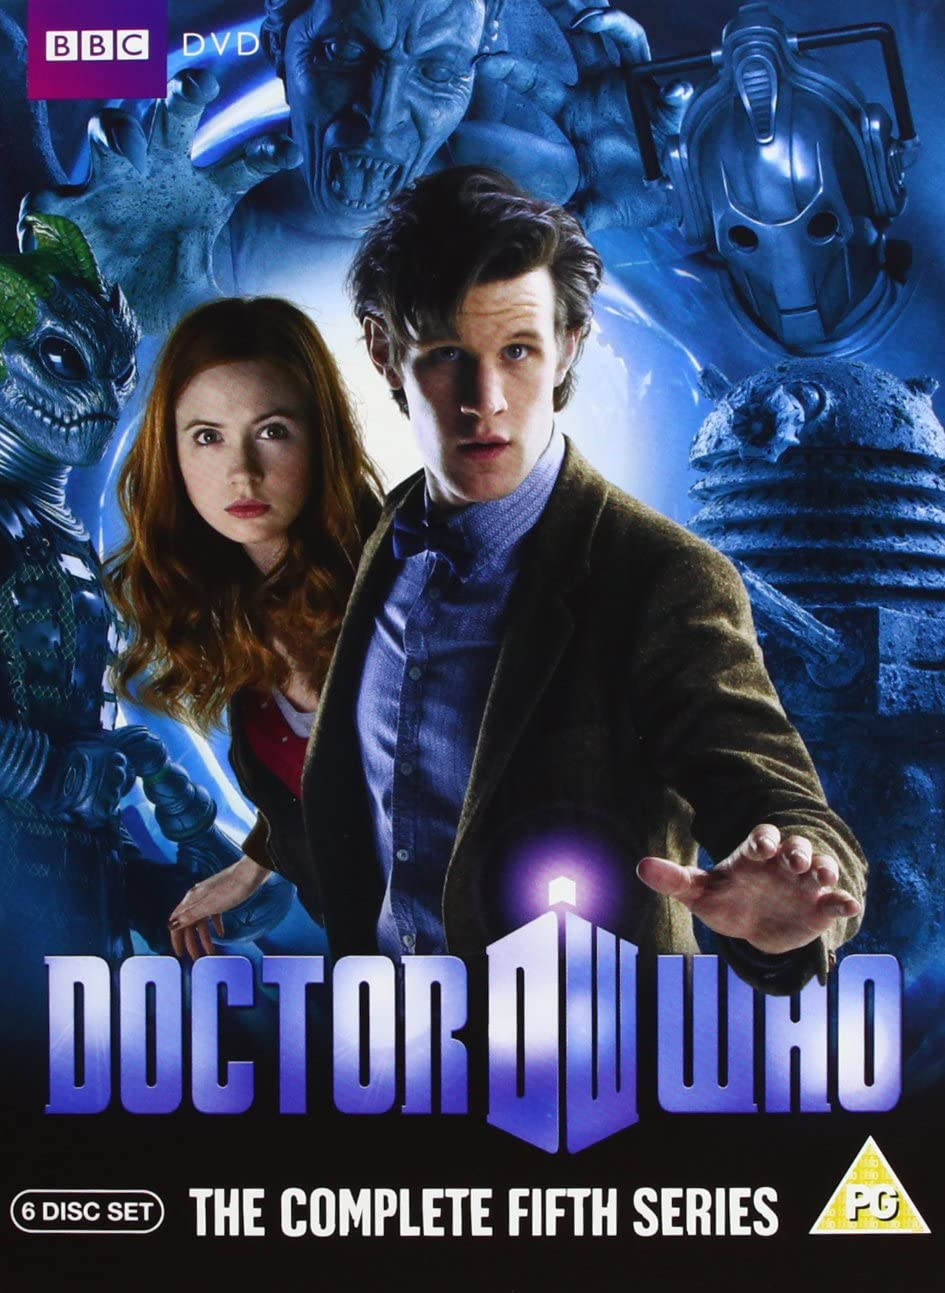 Doctor Who - Complete Series 5 Box Set [Import anglais]: DVD & Blu-ray :  Amazon.fr